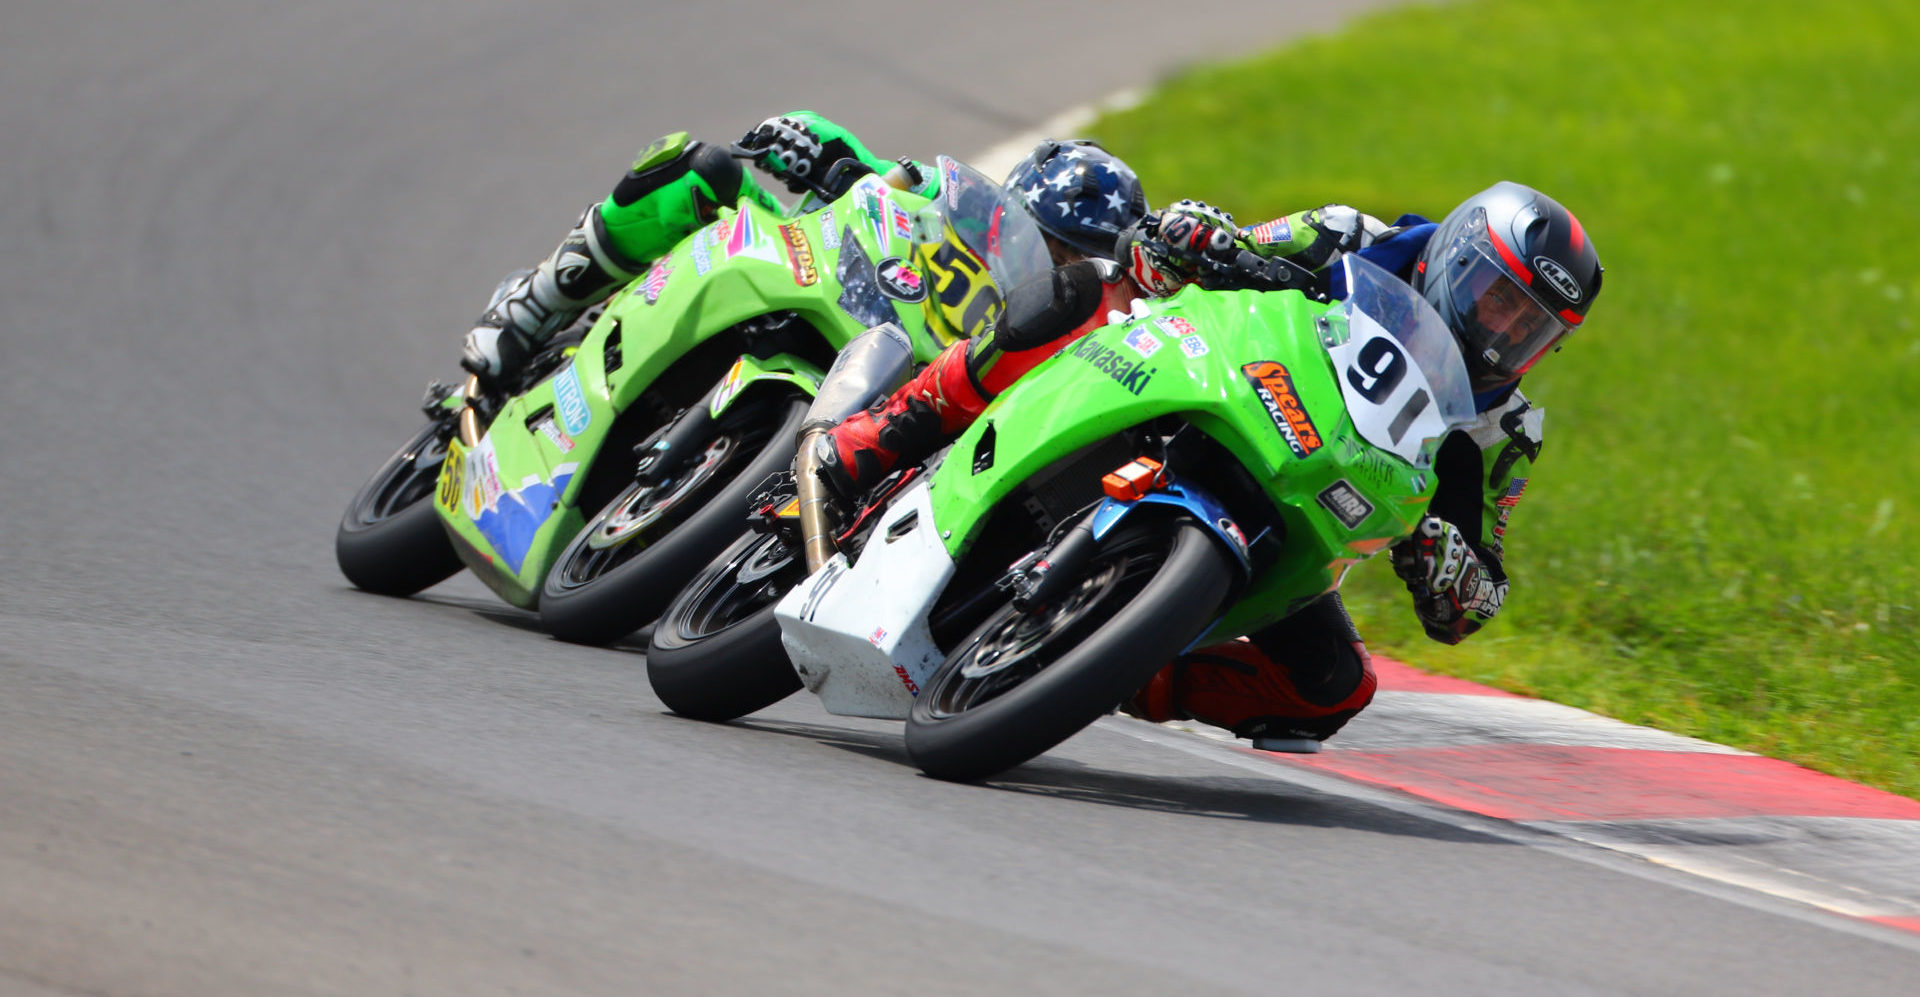 Mark Dickerson (91) and Keegan Brown (56) race for the overall lead in the ASRA Moto 3 Combined race at Summit Point Motorsports Park. Photo by etechphoto.com, courtesy ASRA/CCS.